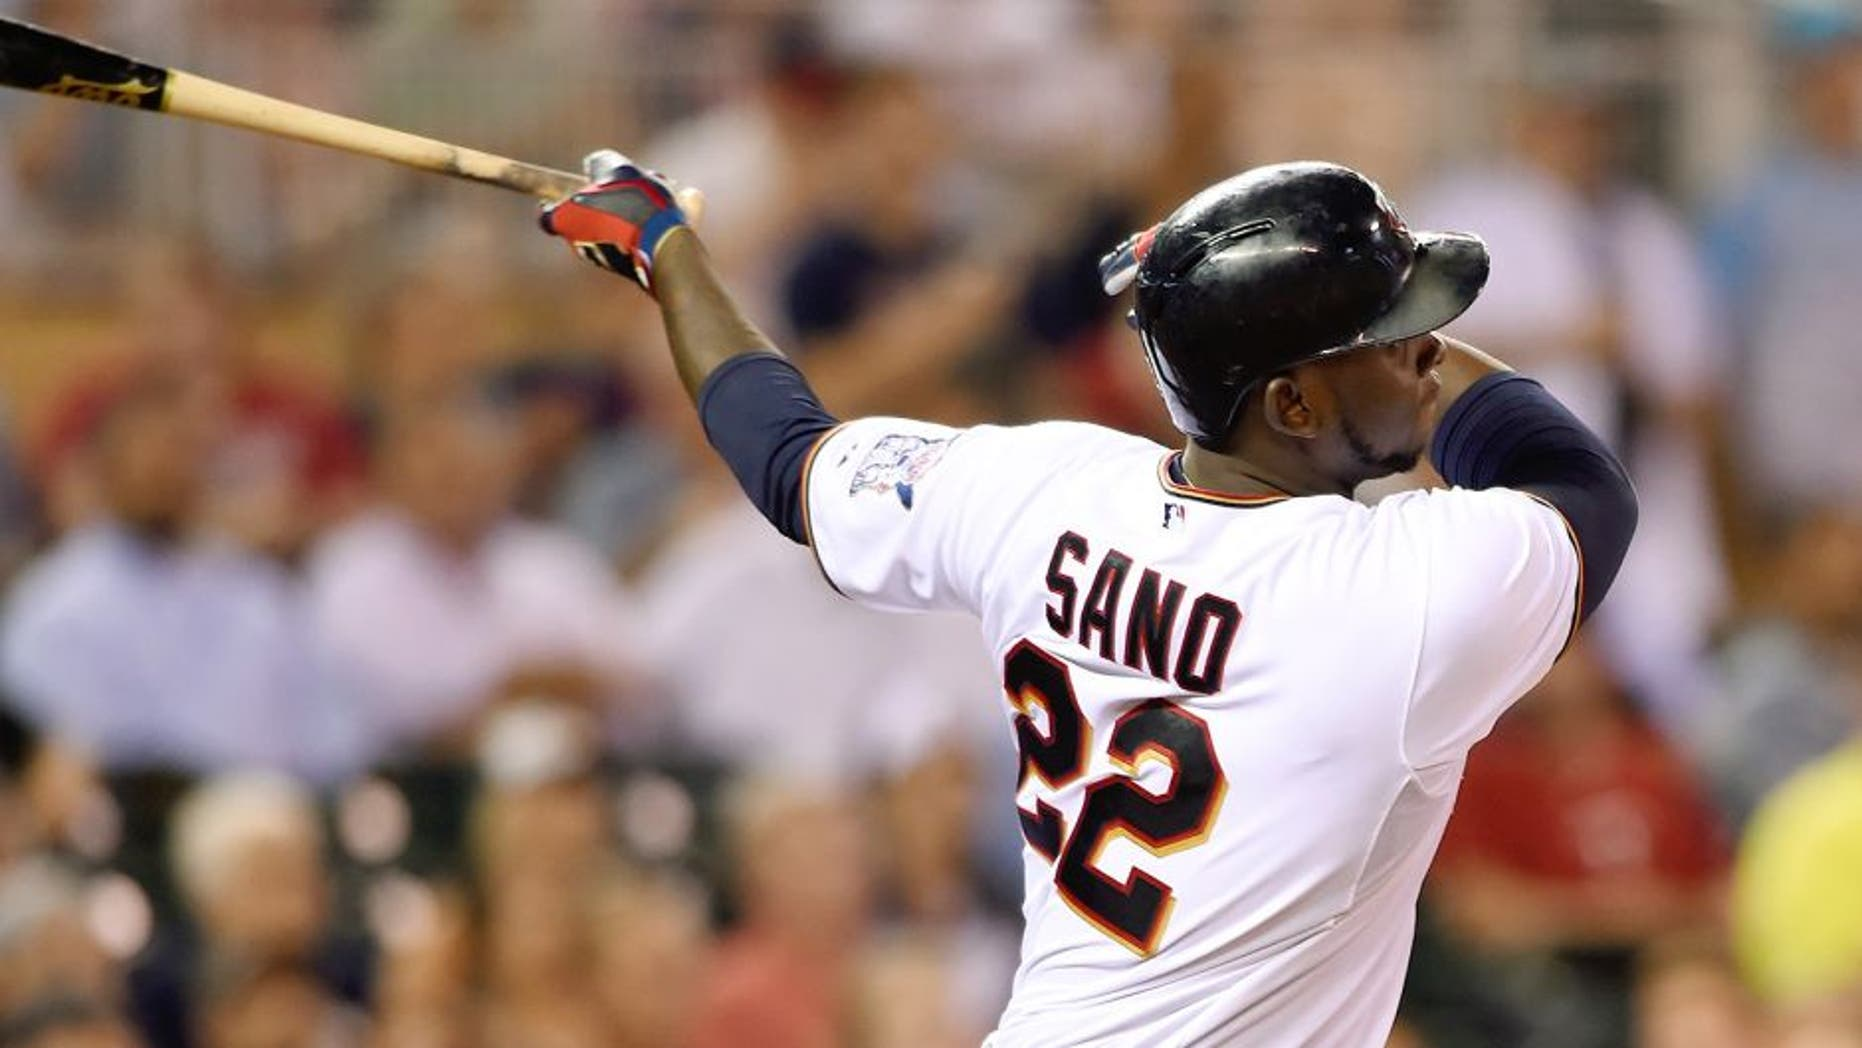 MINNEAPOLIS, MN - SEPTEMBER 1: Miguel Sano #22 of the Minnesota Twins hits a solo home run against the Chicago White Sox during the seventh inning of the game on September 1, 2015 at Target Field in Minneapolis, Minnesota. The Twins defeated the White Sox 8-6. (Photo by Hannah Foslien/Getty Images)